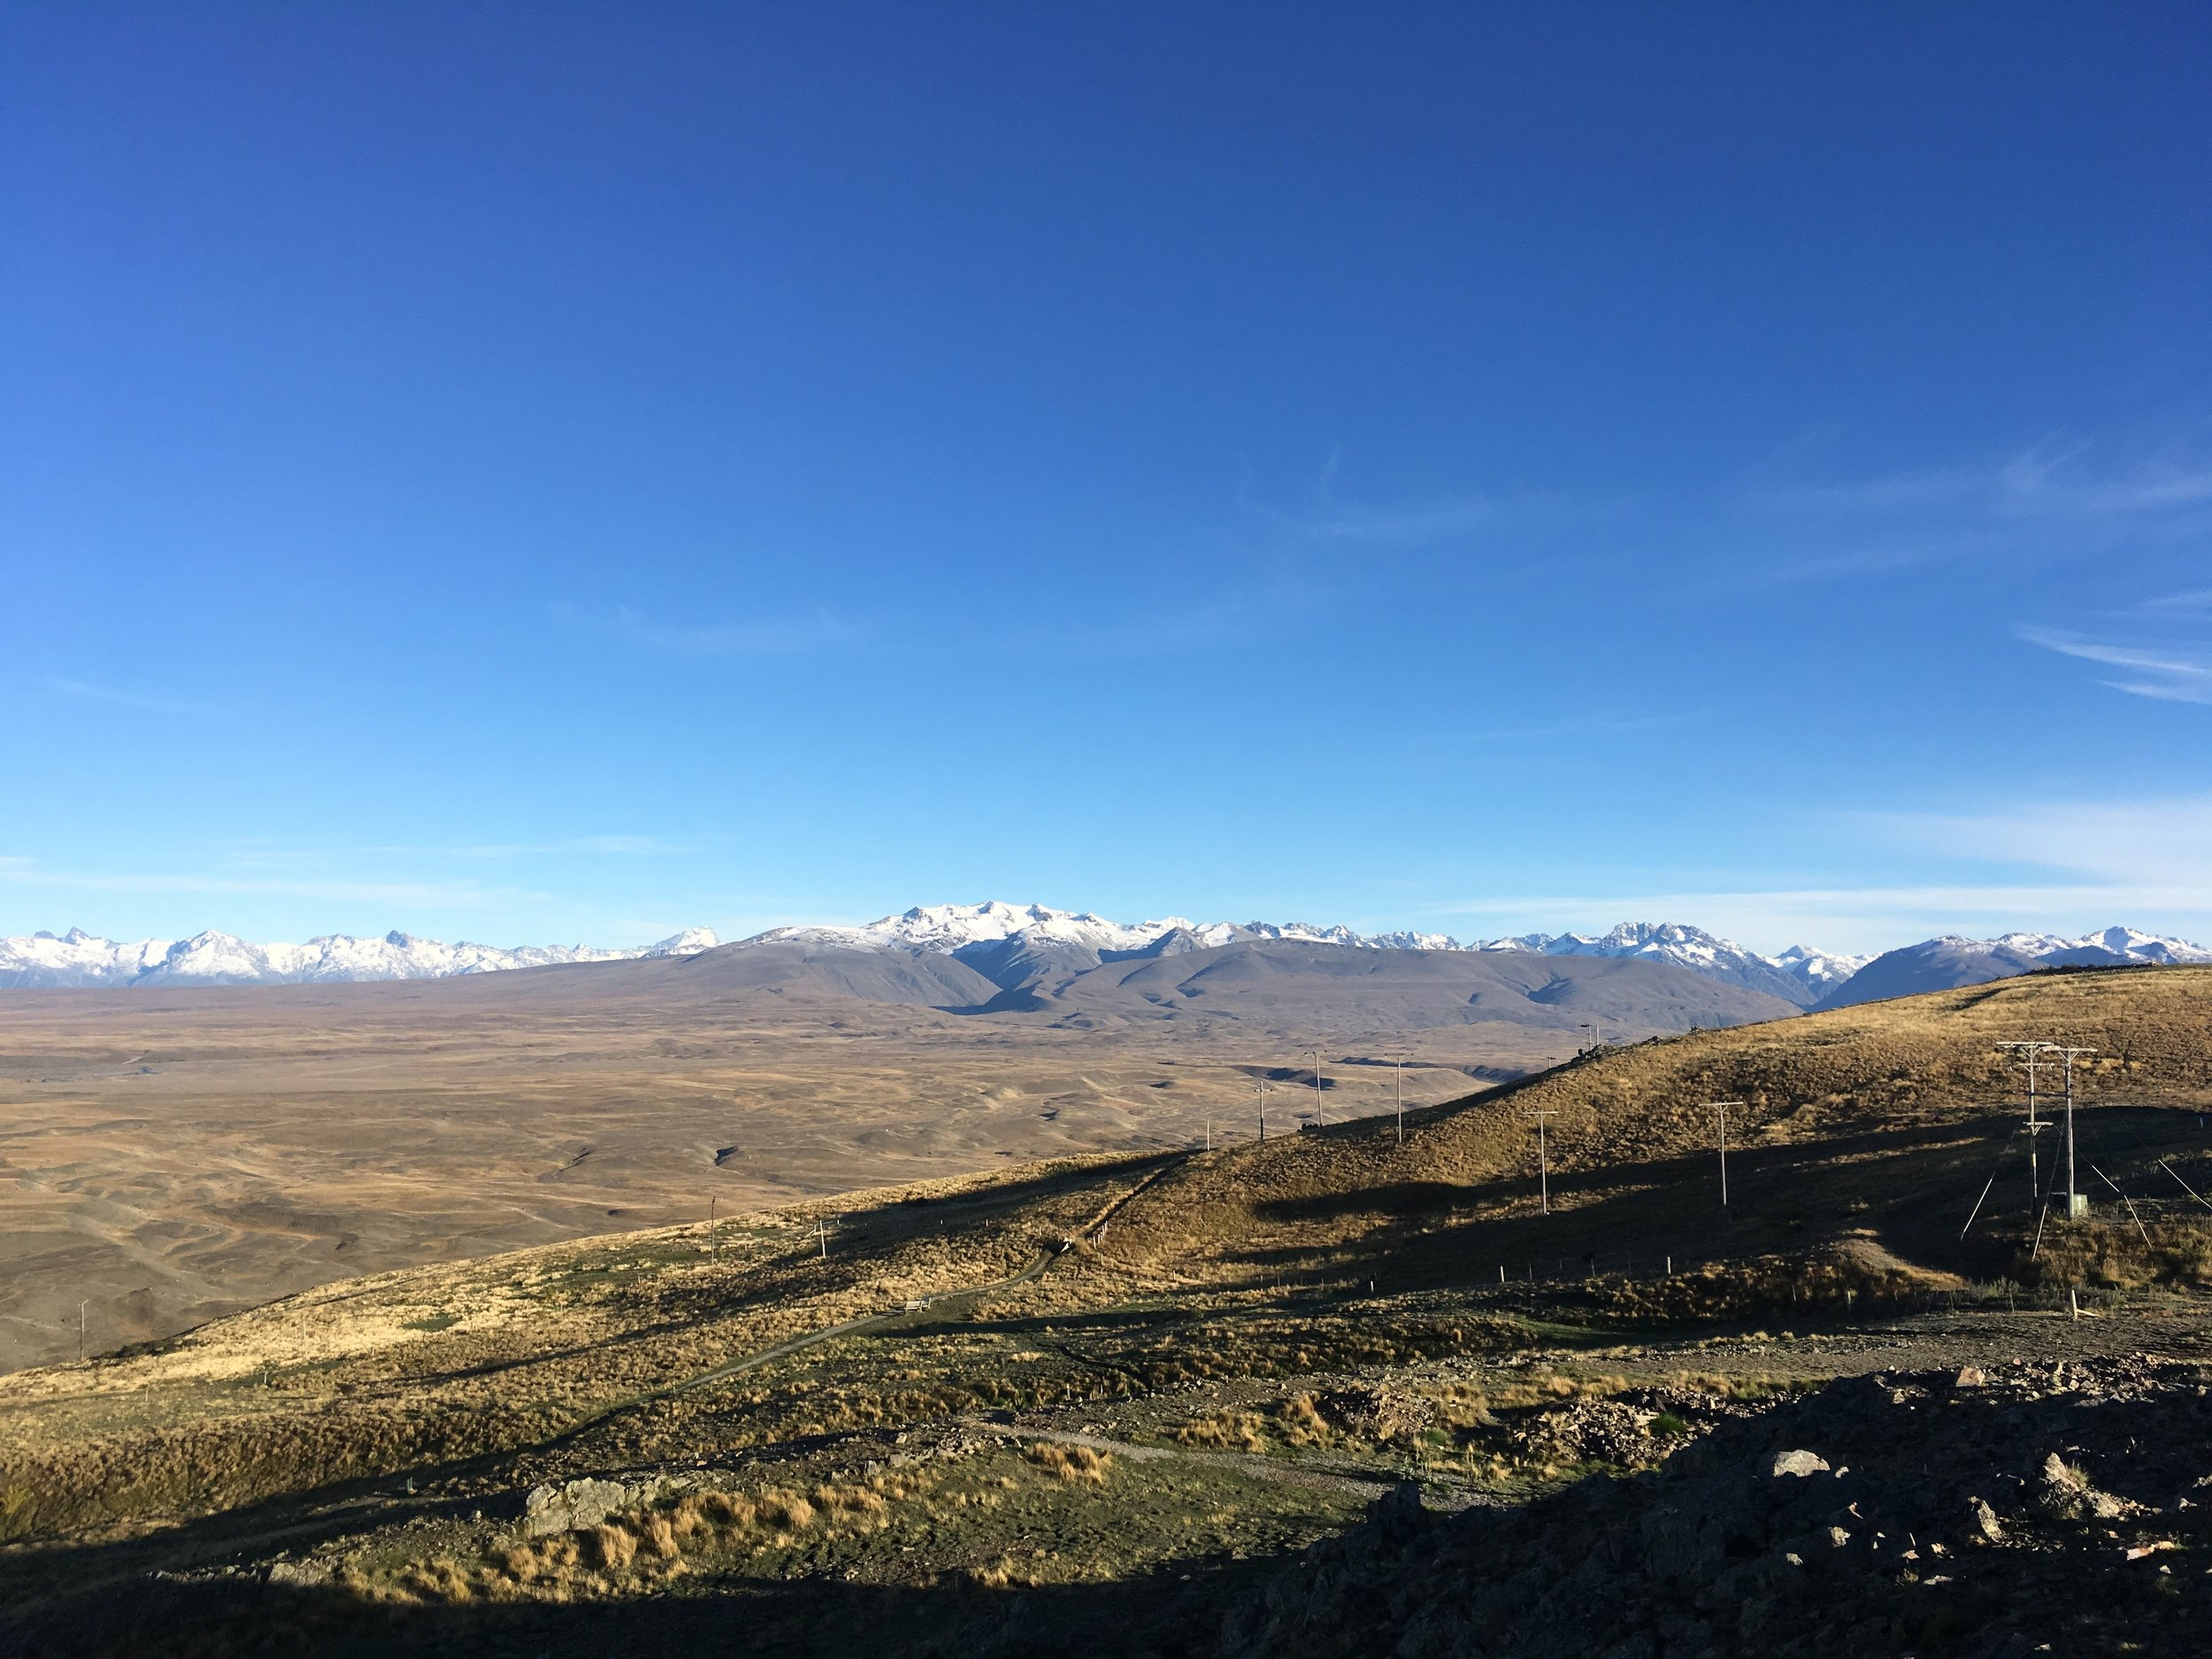 Looking at the mountain ranges of the South Island from the Mount John Observatory, Lake Tekapo, NZ